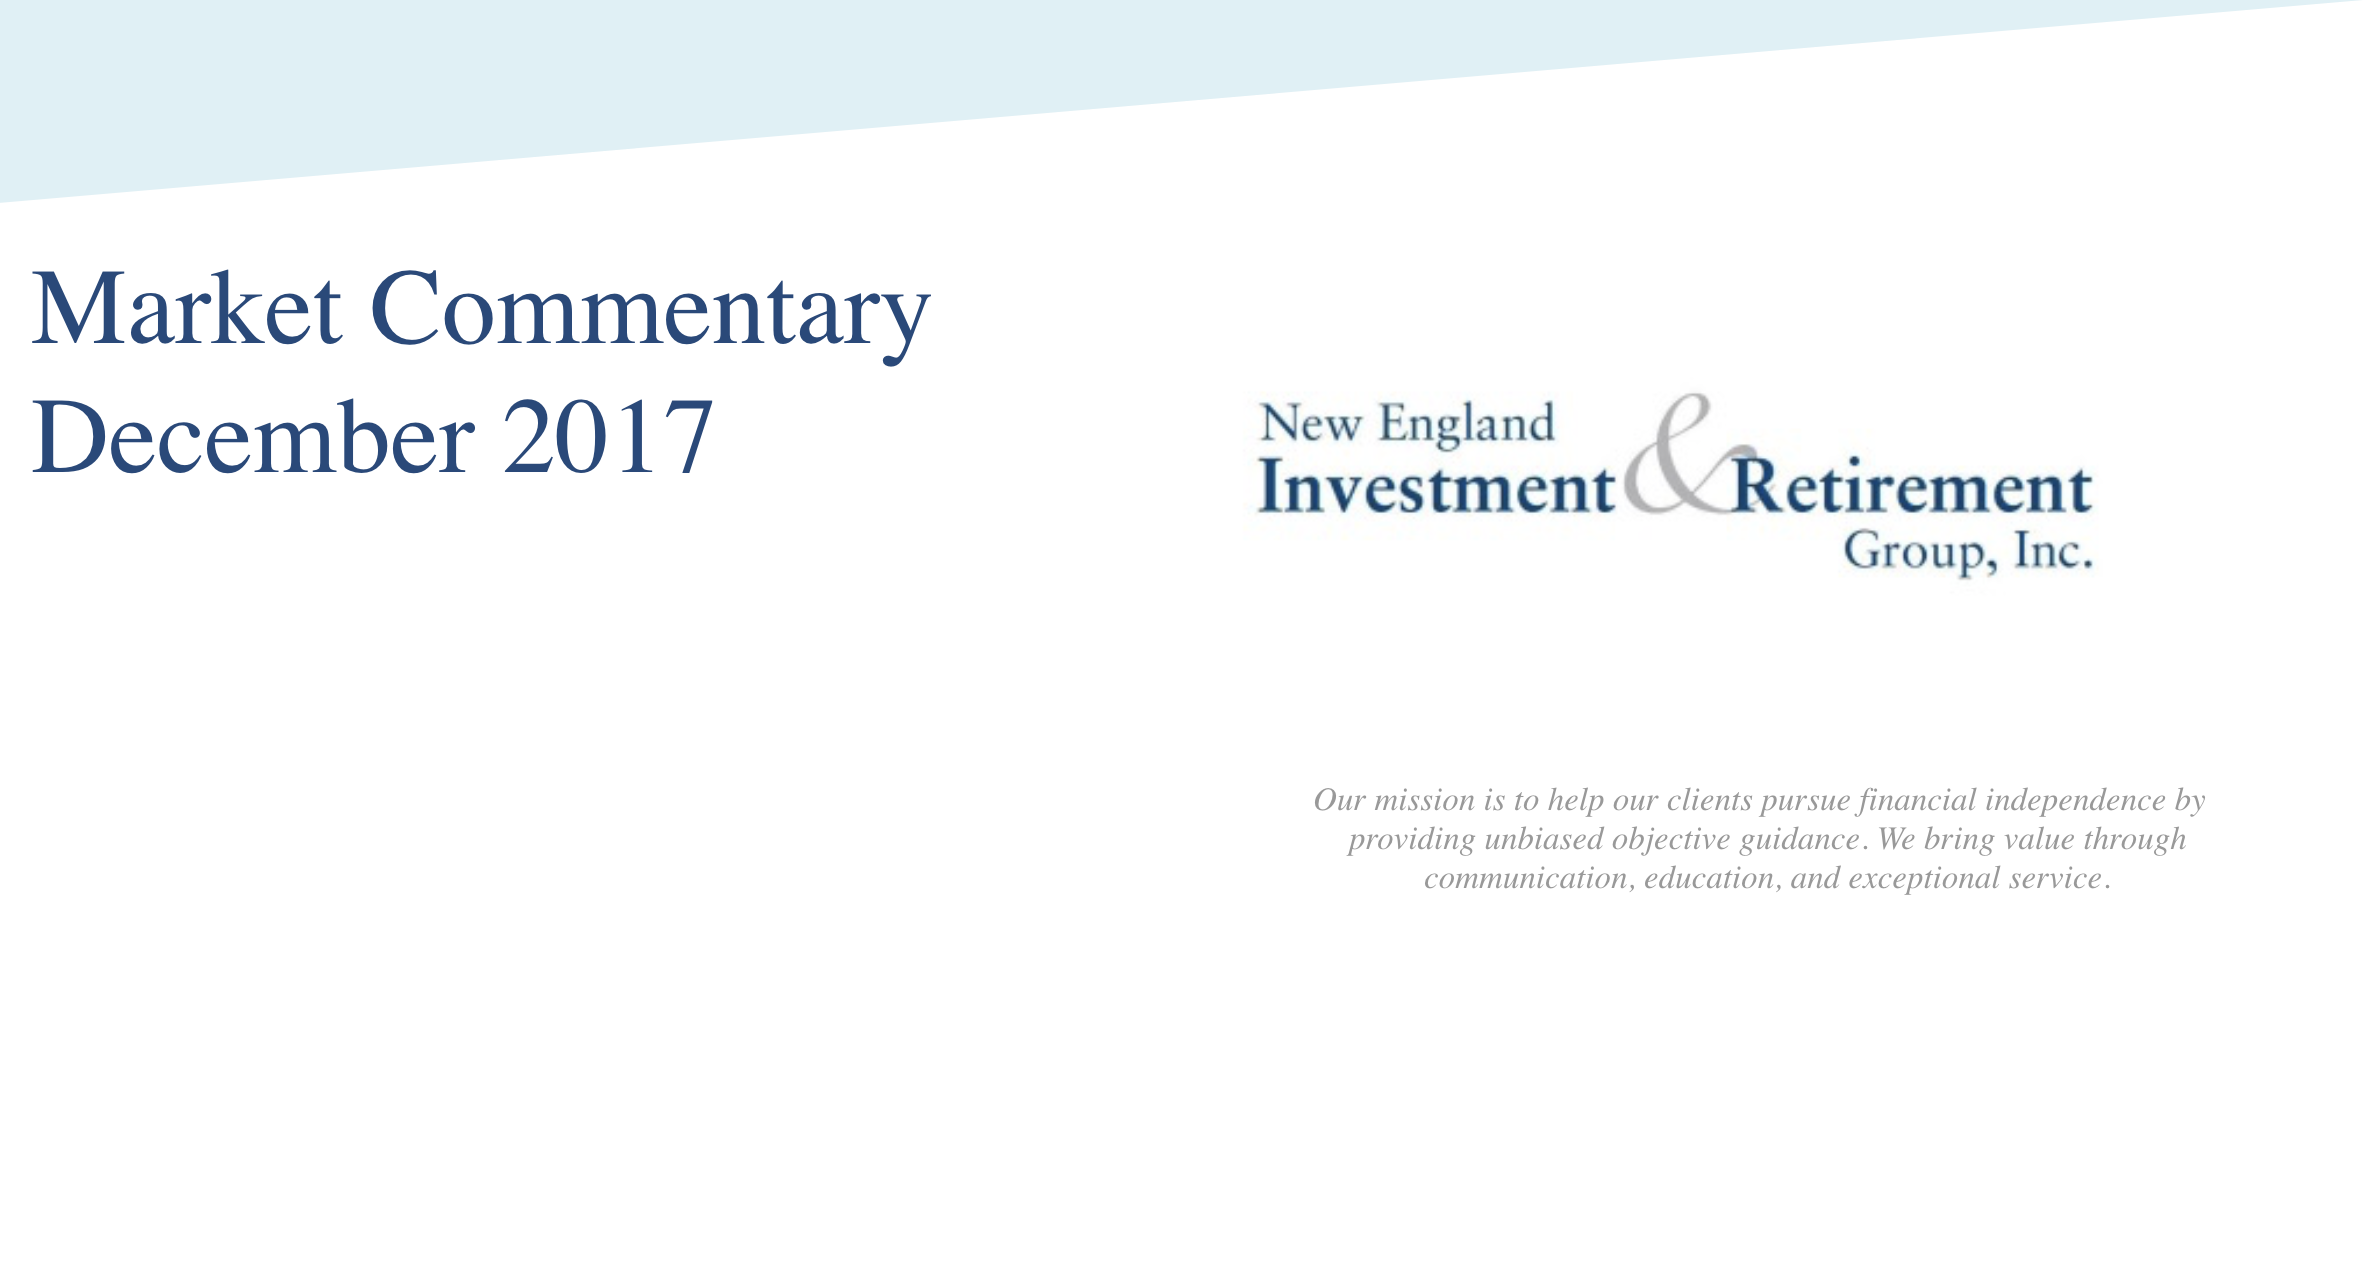 New England Investment & Retirement Group December 2017 Market Commentary